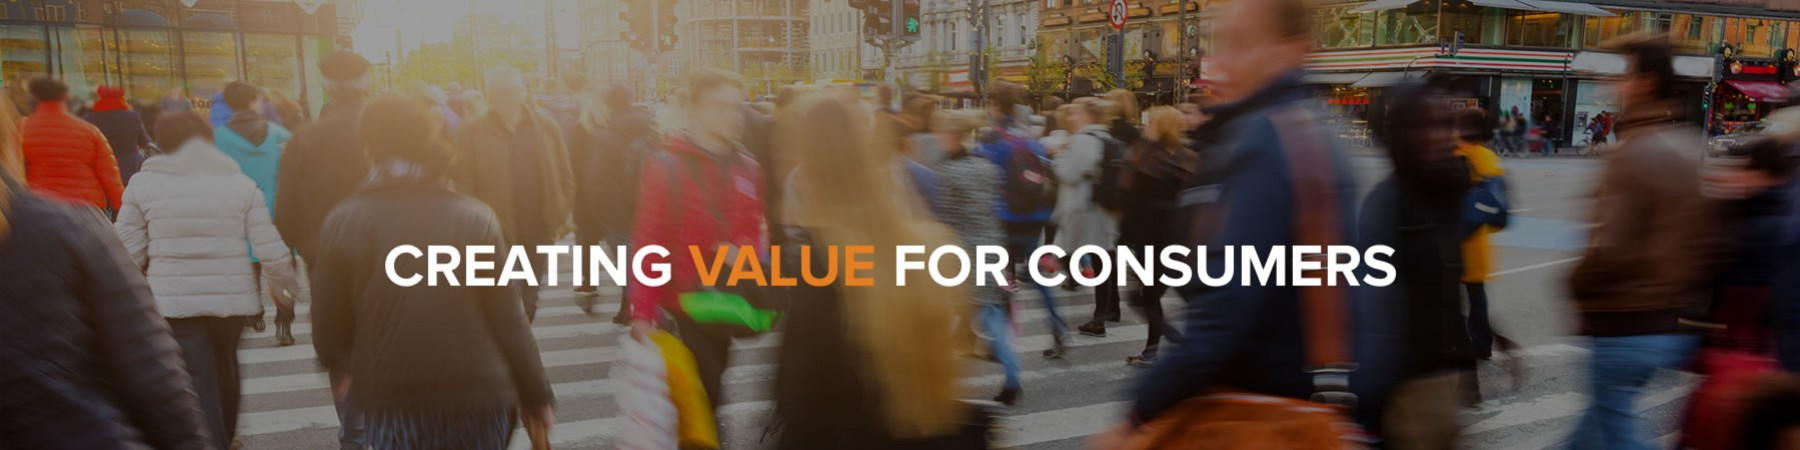 Creating Value for Consumers